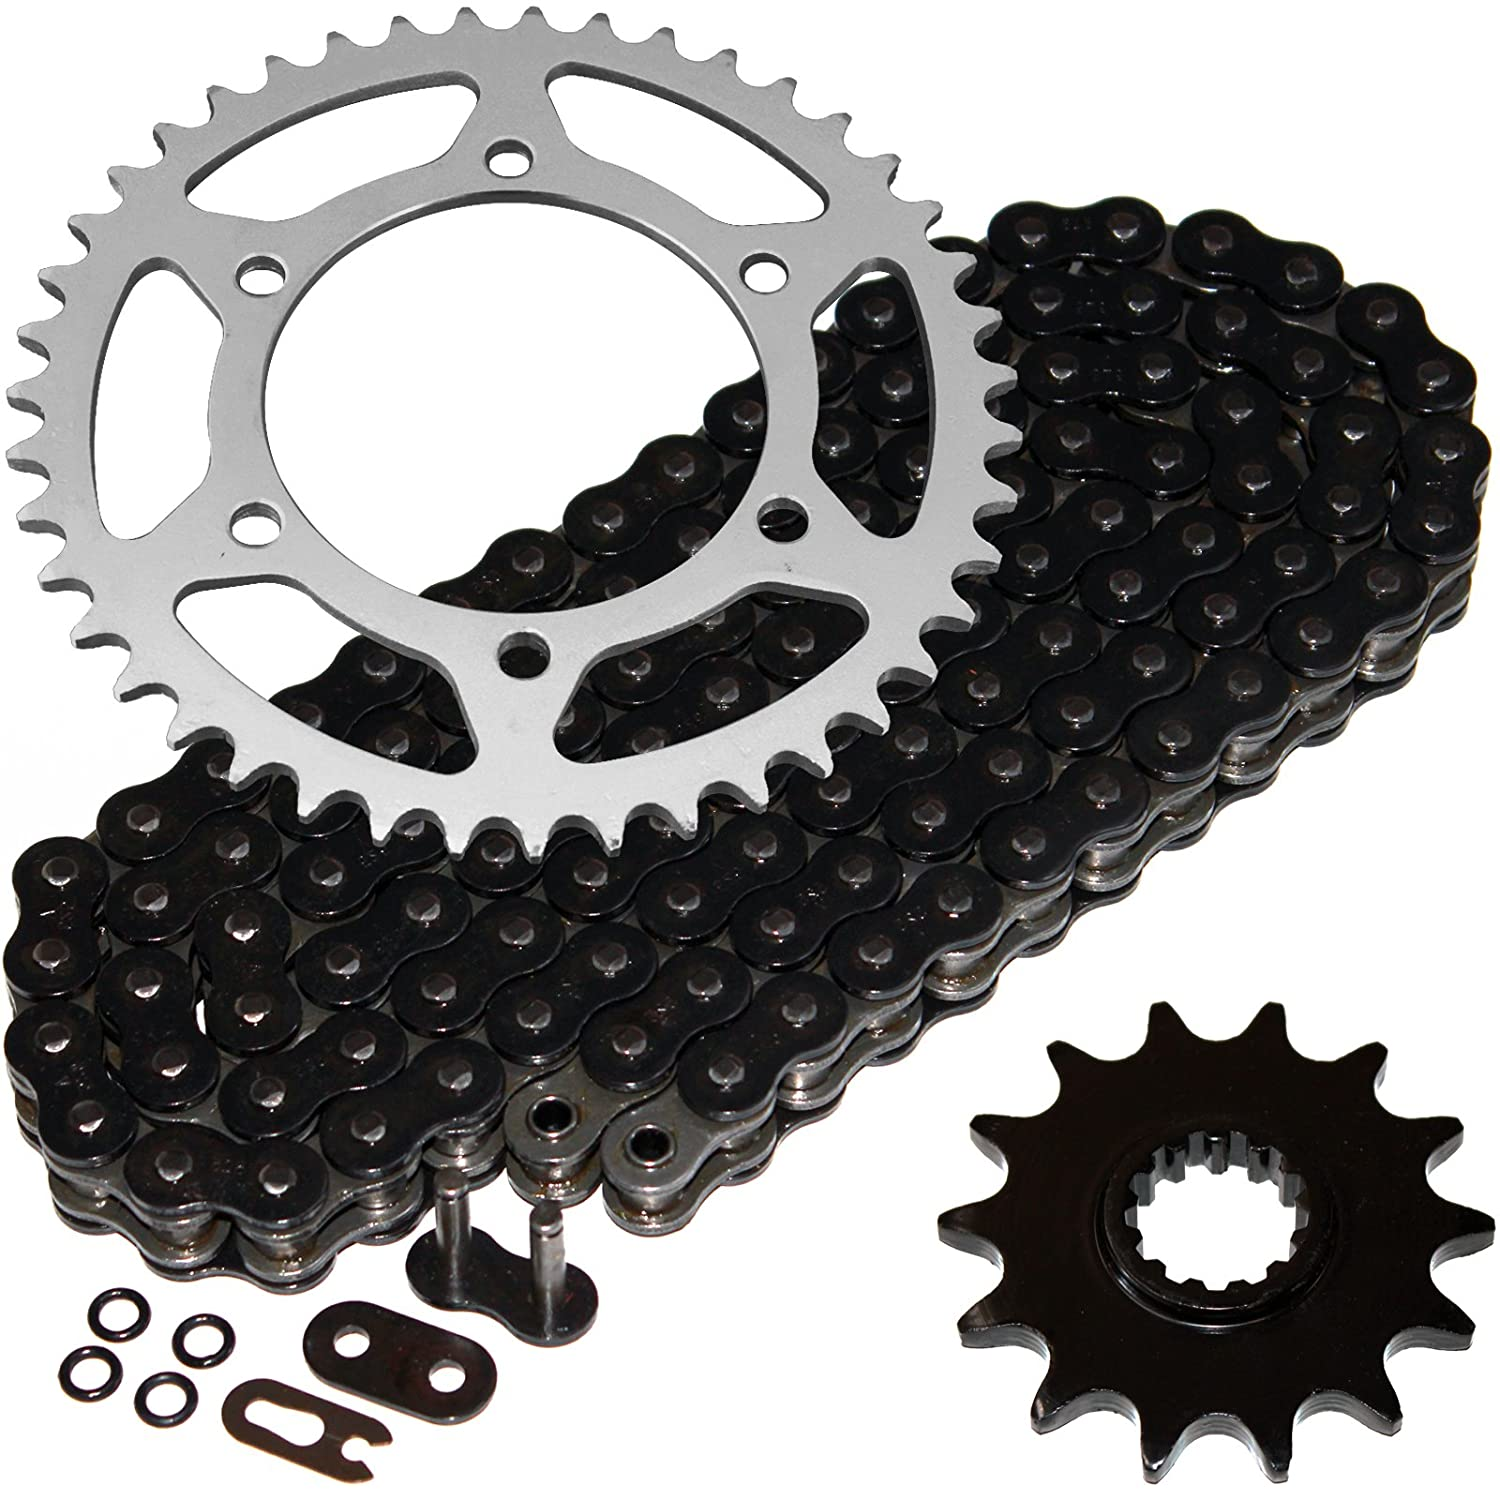 Amazon.com: Caltric Black O-Ring Drive Chain & Sprockets ...